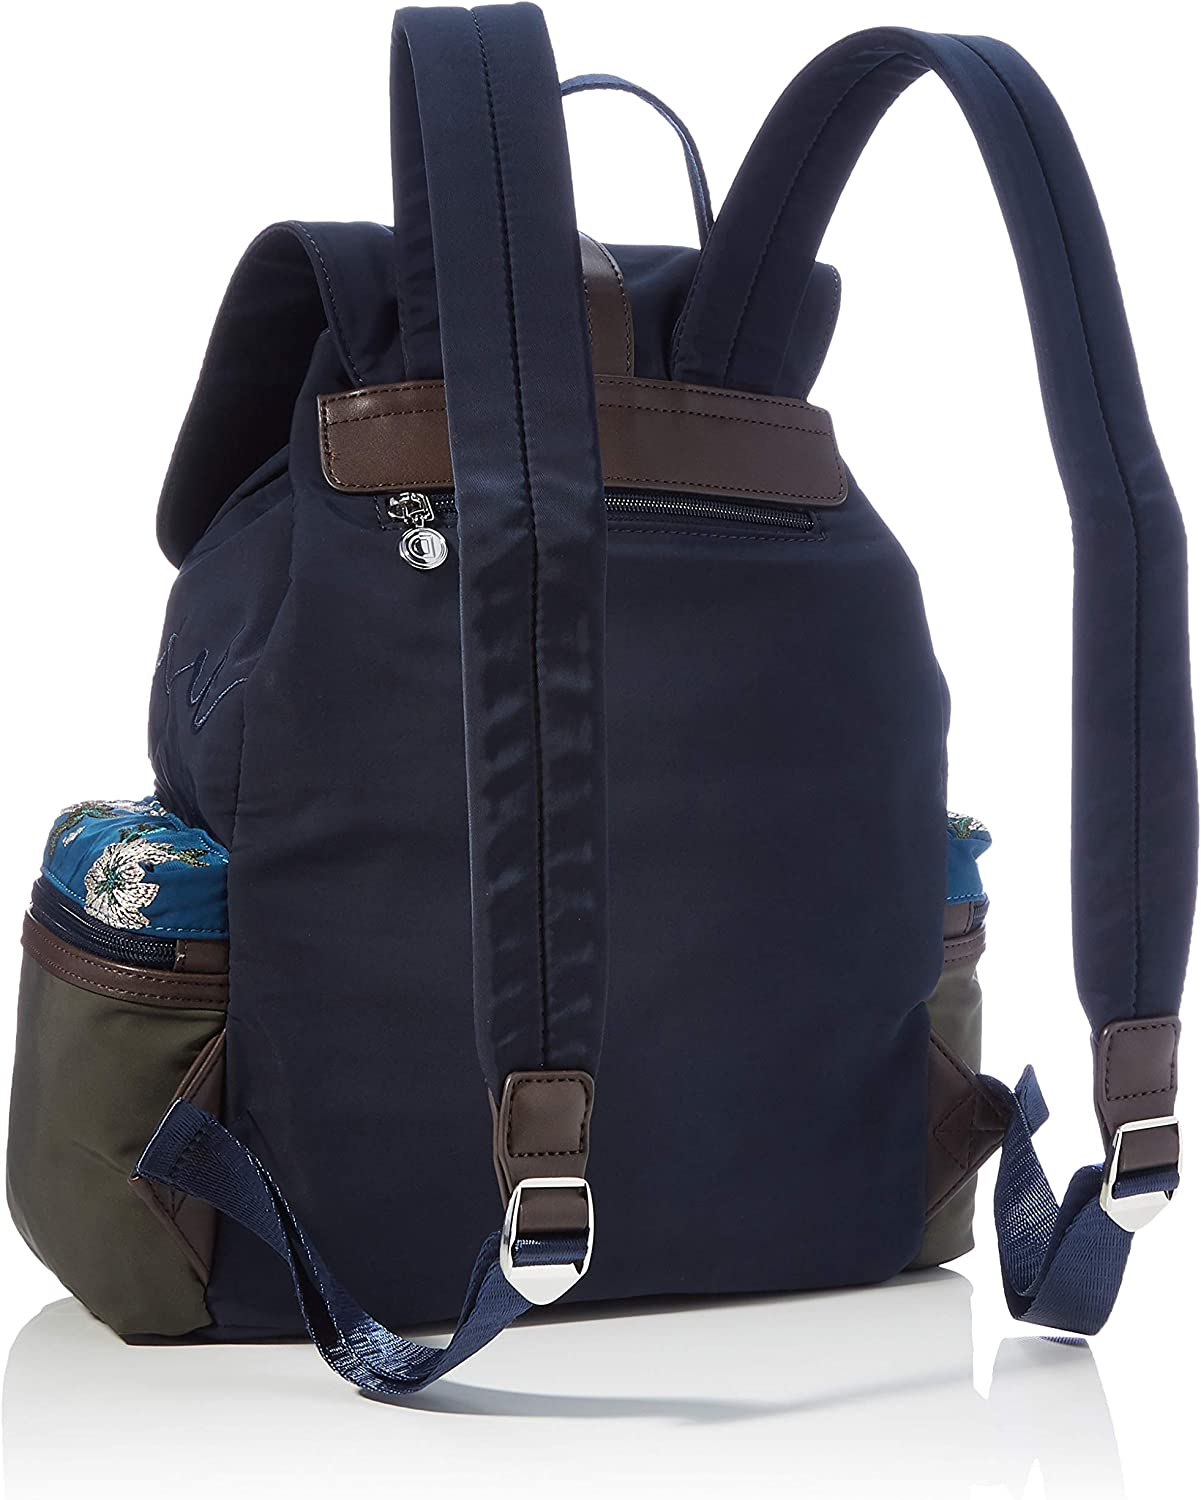 Desigual Womens Backpack One Size Blue